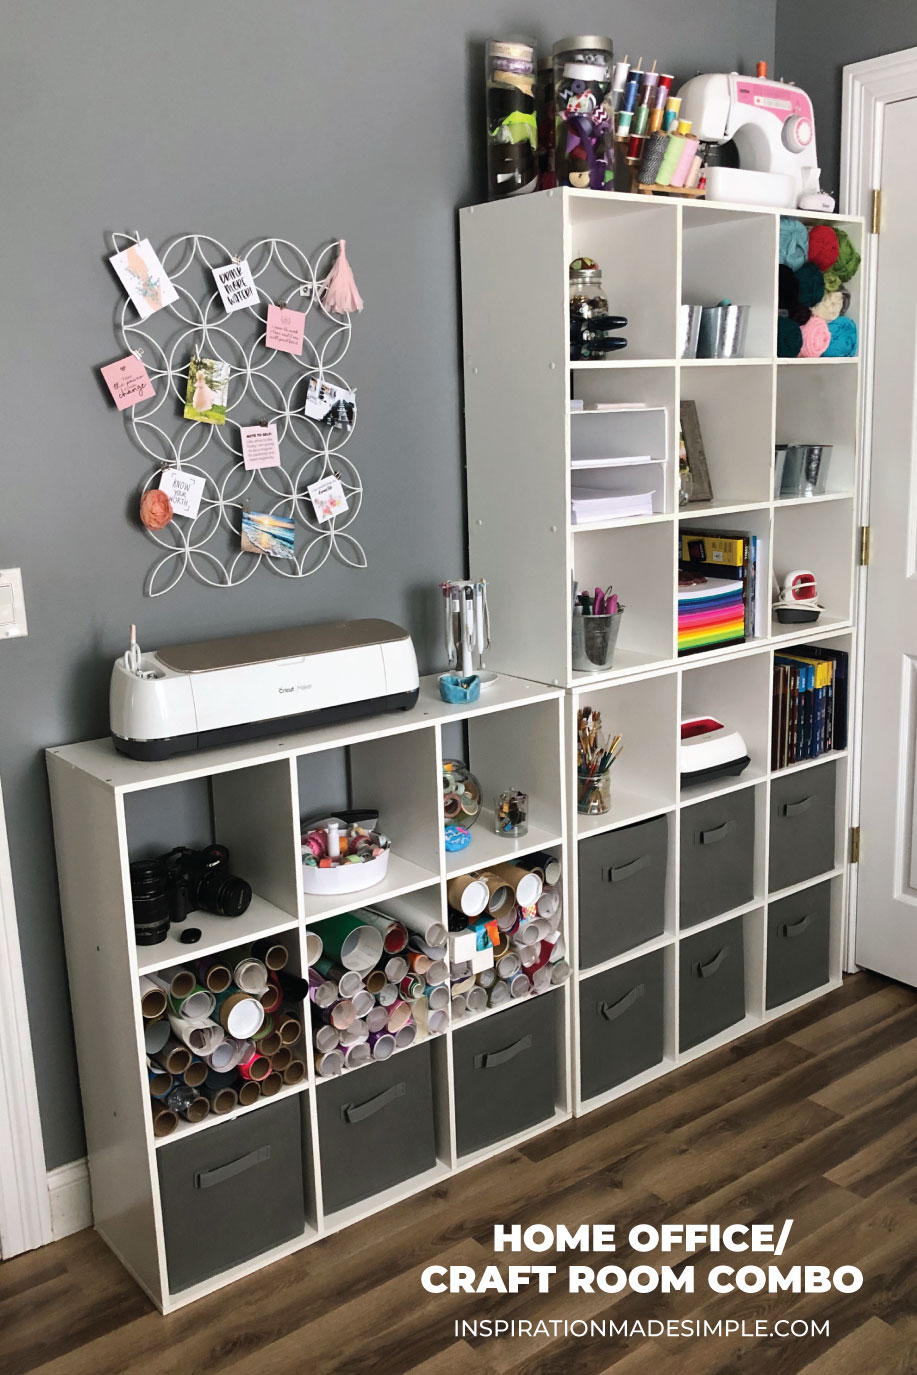 Home Office Craft Room Combo